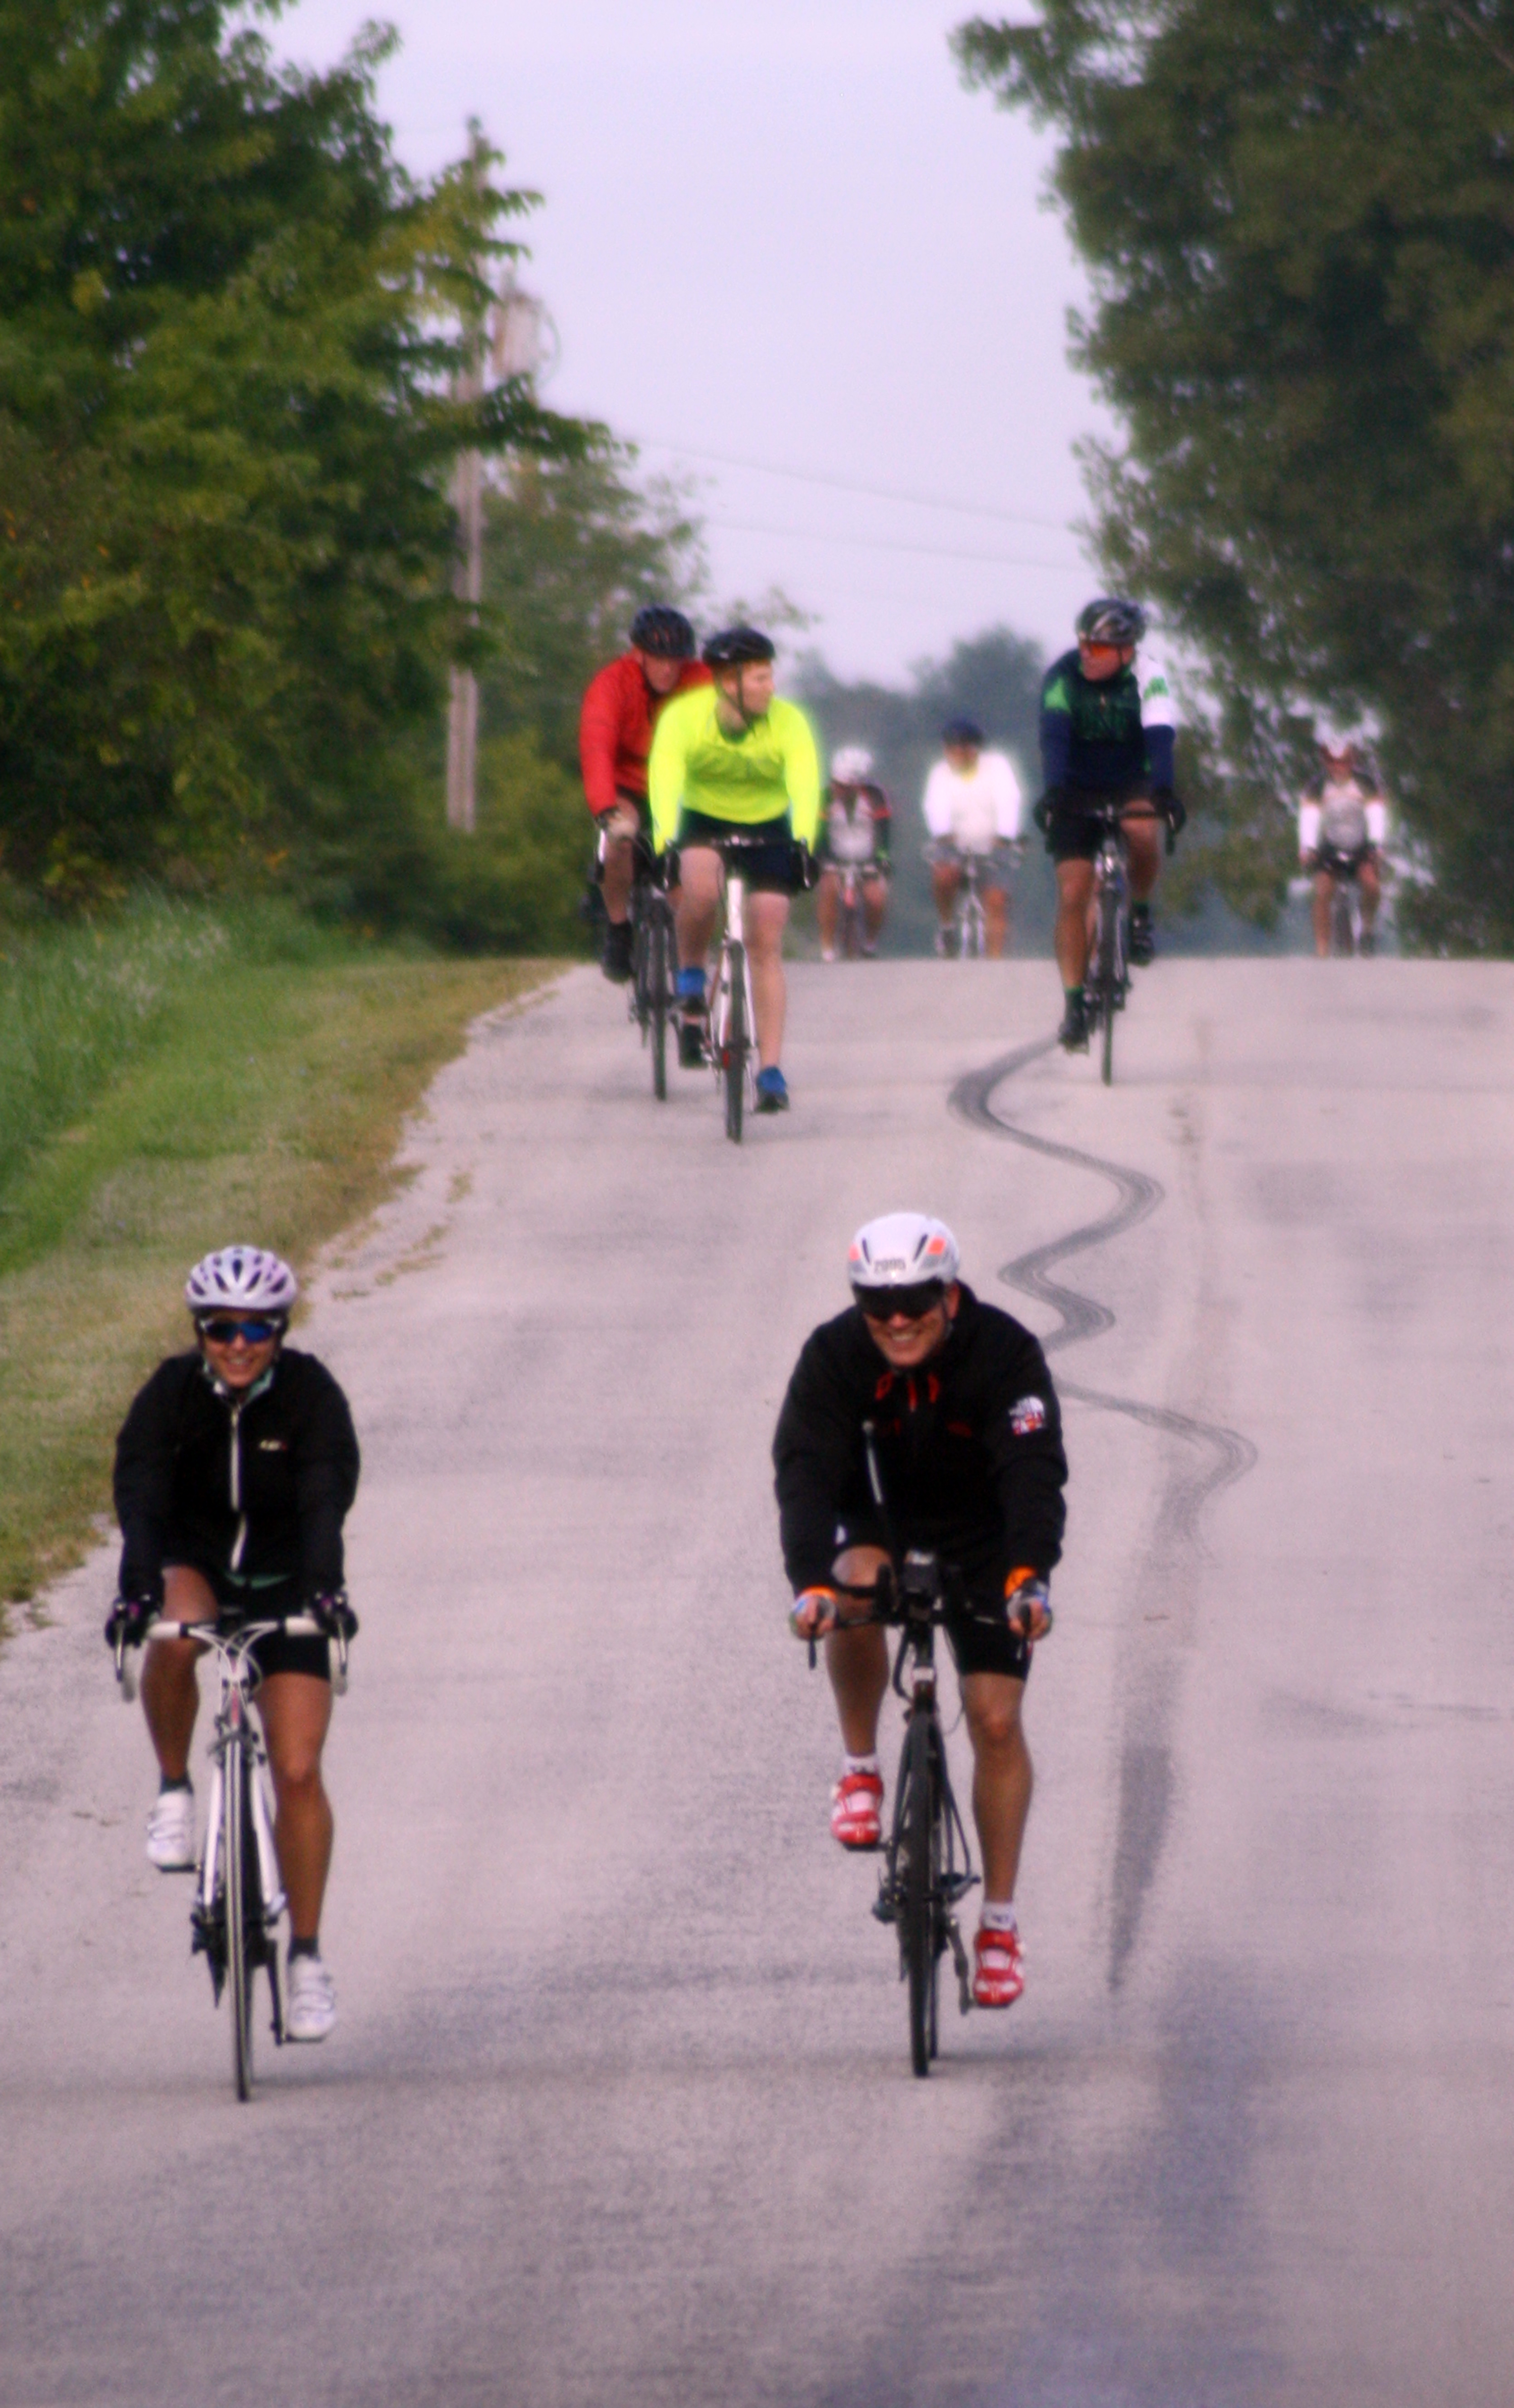 Indiana wabash county lagro - Riders Make Their Way Along A Rural Wabash County Road East Of Lagro During The 2014 Dam To Dam Ride